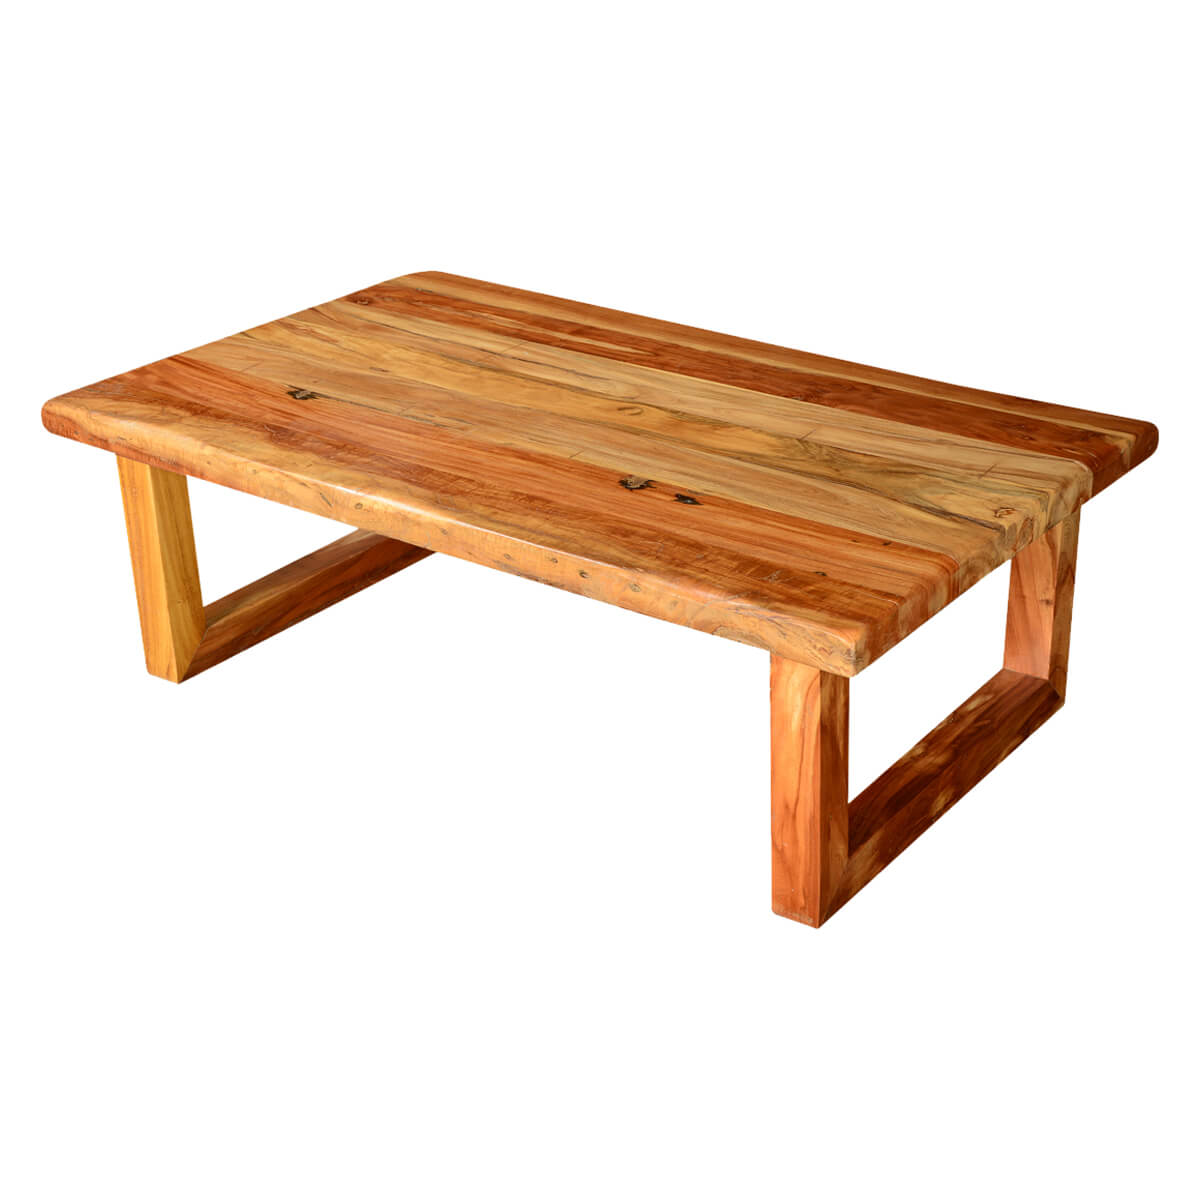 Modern Rustic Simplicity Acacia Wood 51 Coffee Table